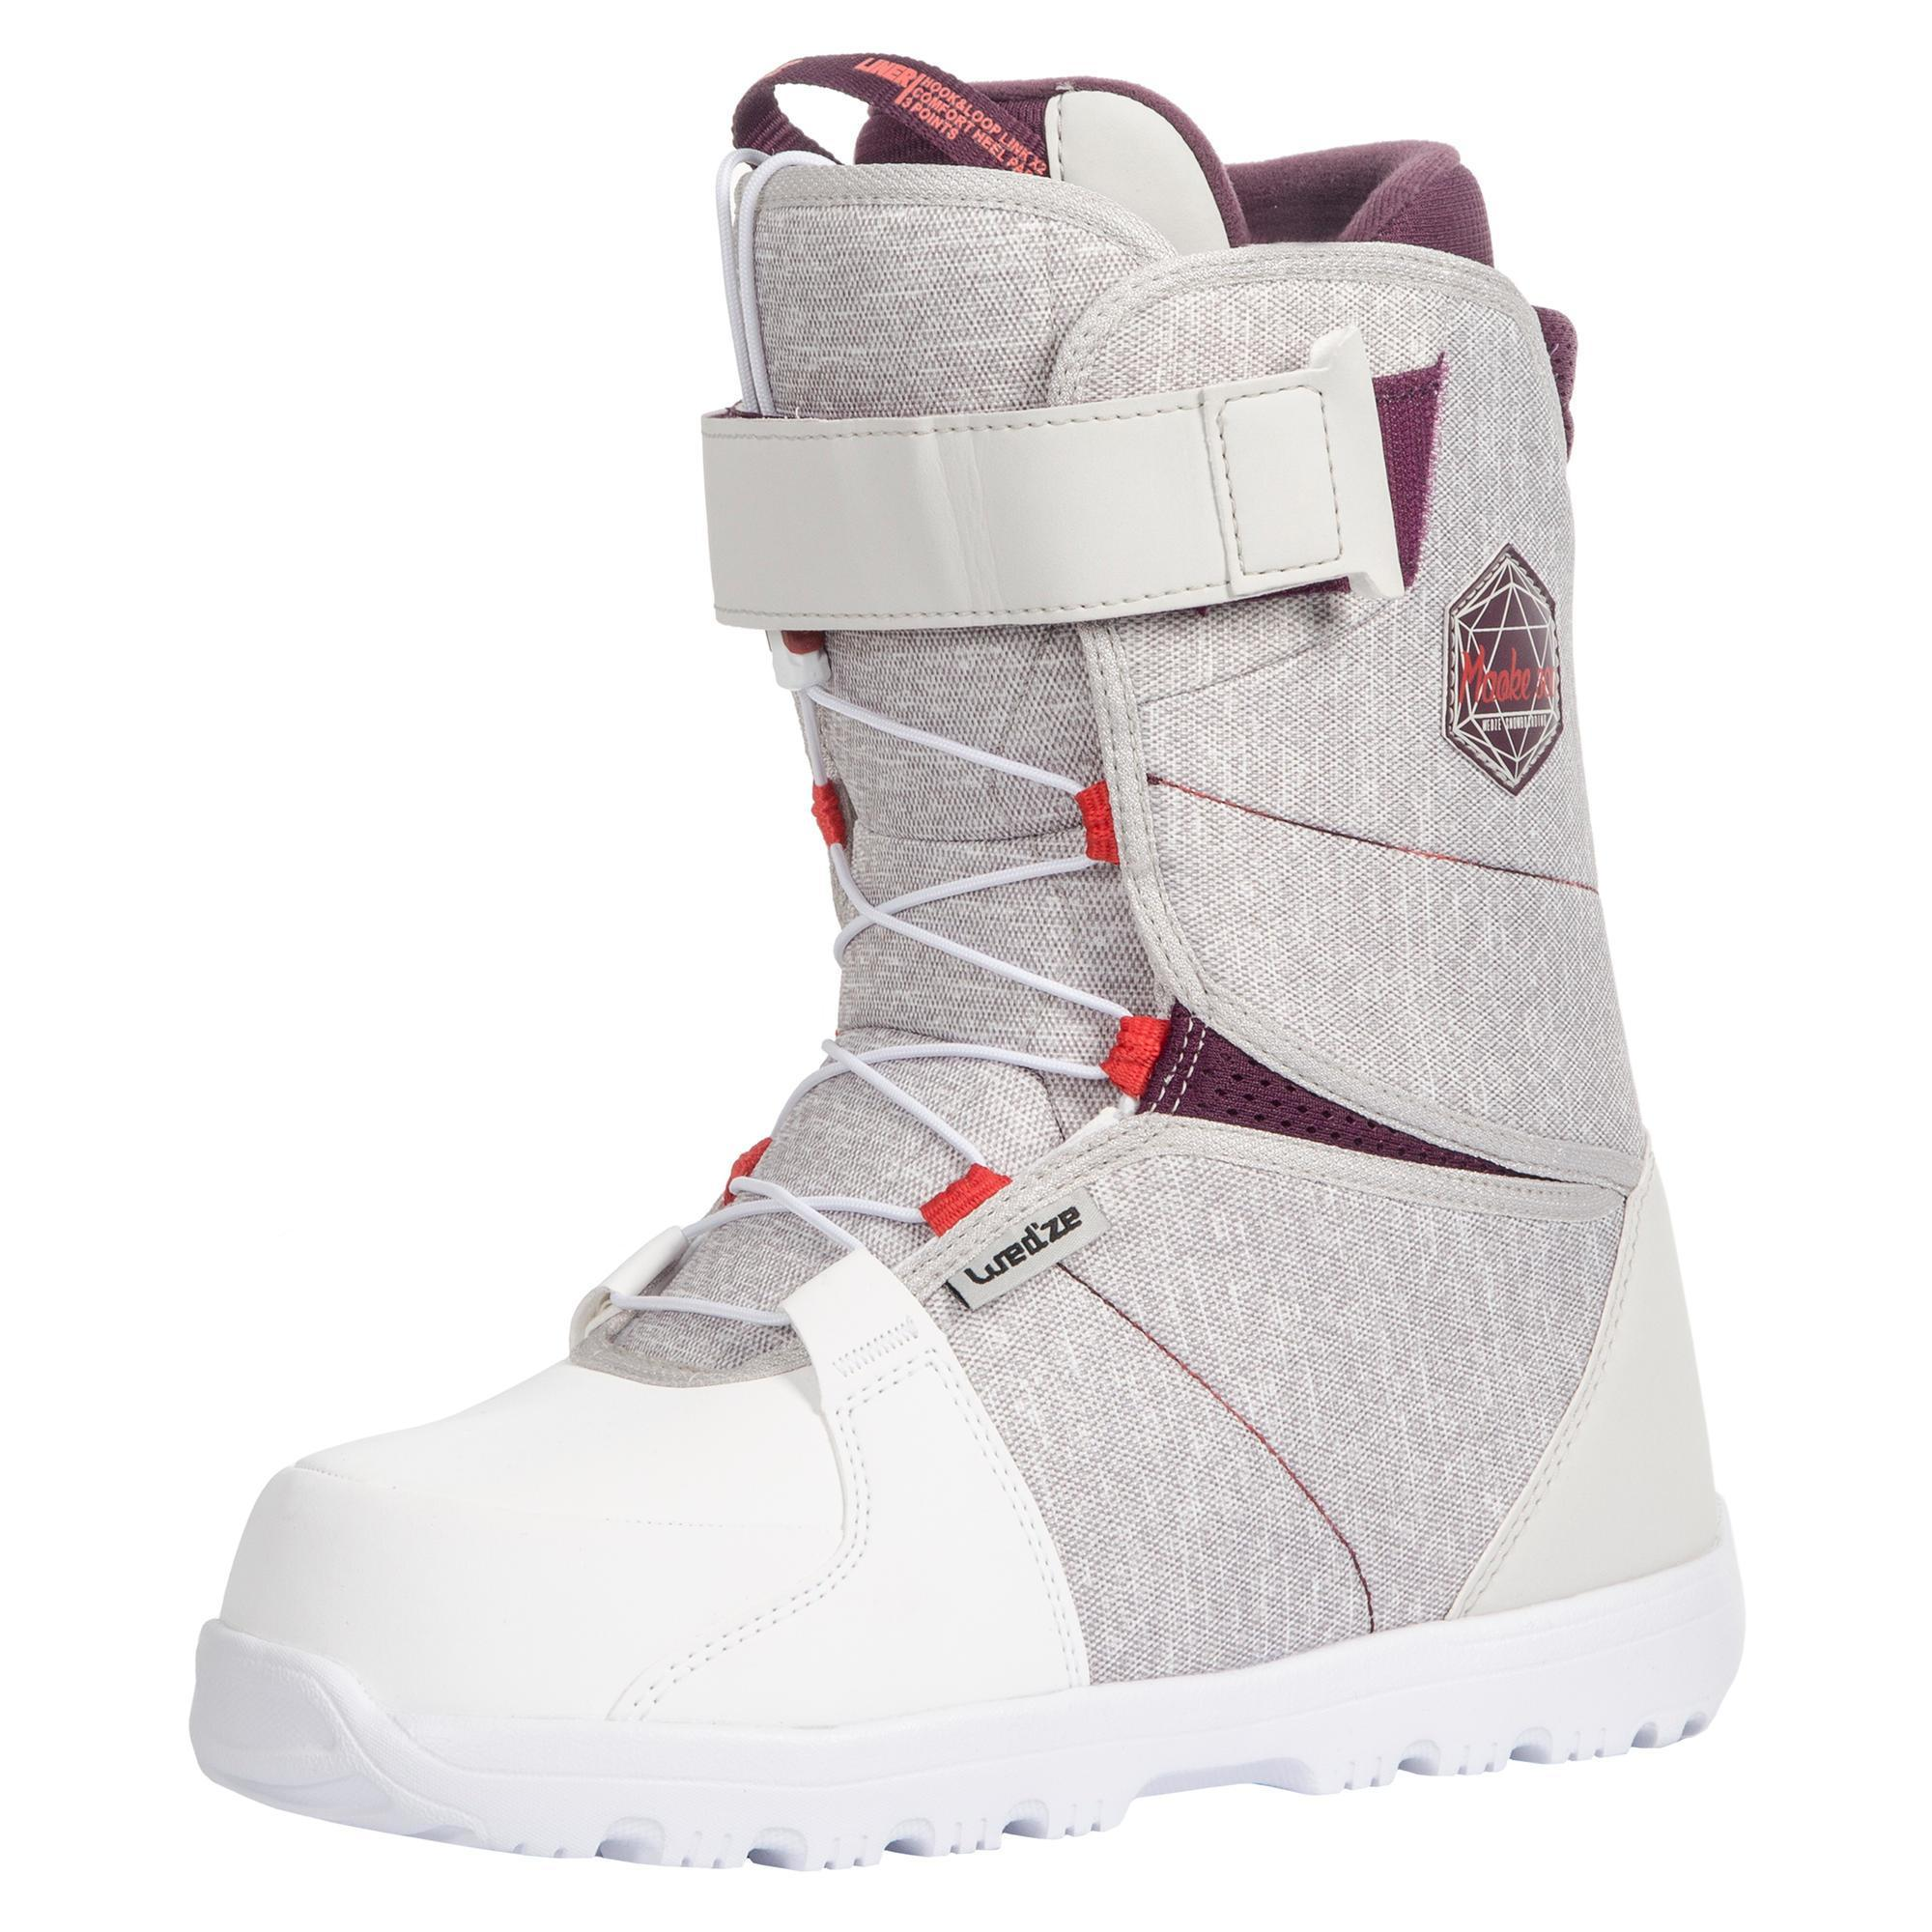 Wed'ze All mountain snowboardboots voor dames Maoke 300 - Fast Lock 2Z wit thumbnail